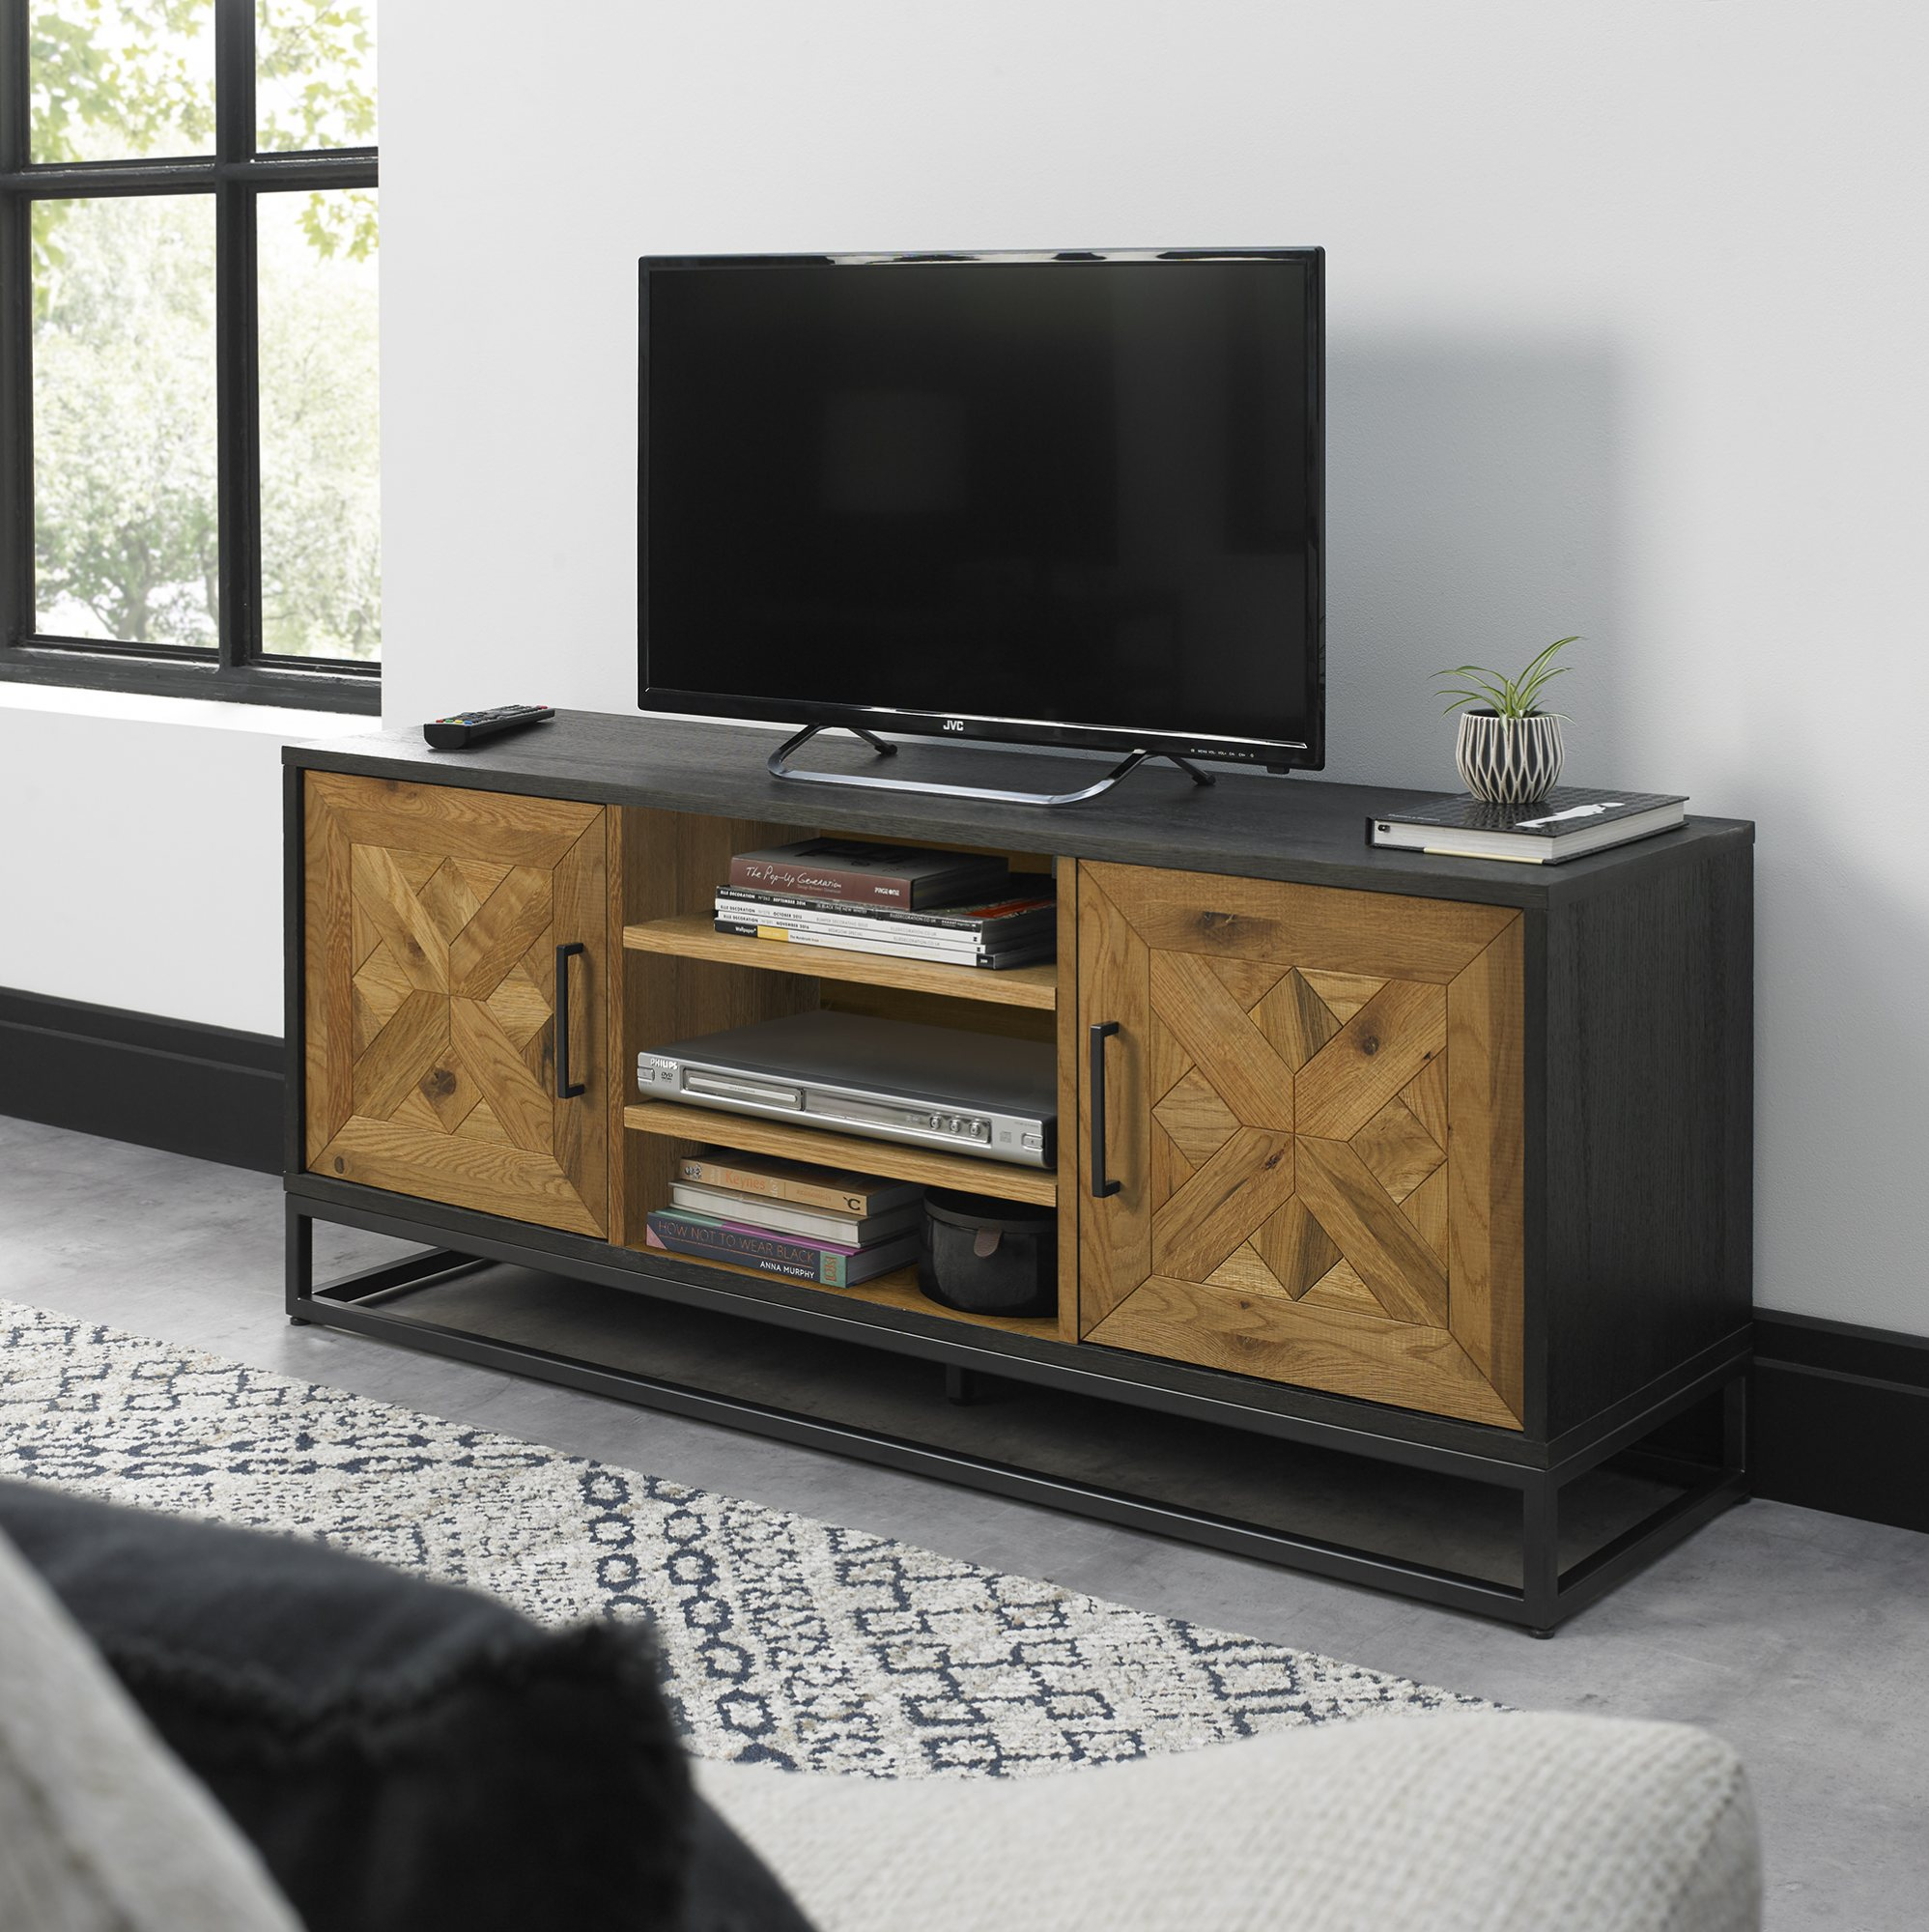 HELIX TV UNIT  L133cm x D38cm x H55cm